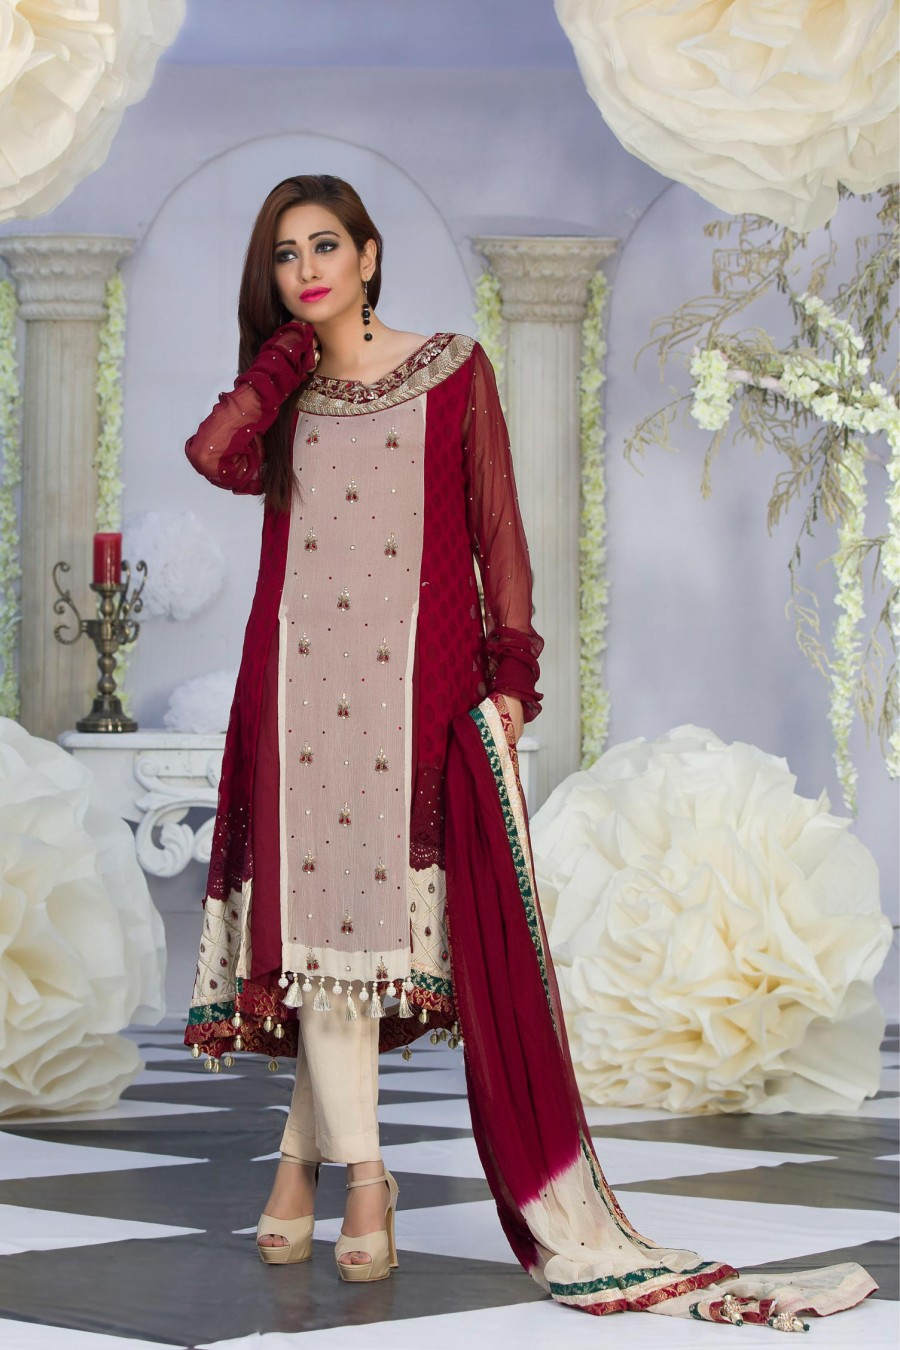 5707f2cd276 25 Latest Trends in Pakistani Party Dresses 2018 - Dresses - Crayon